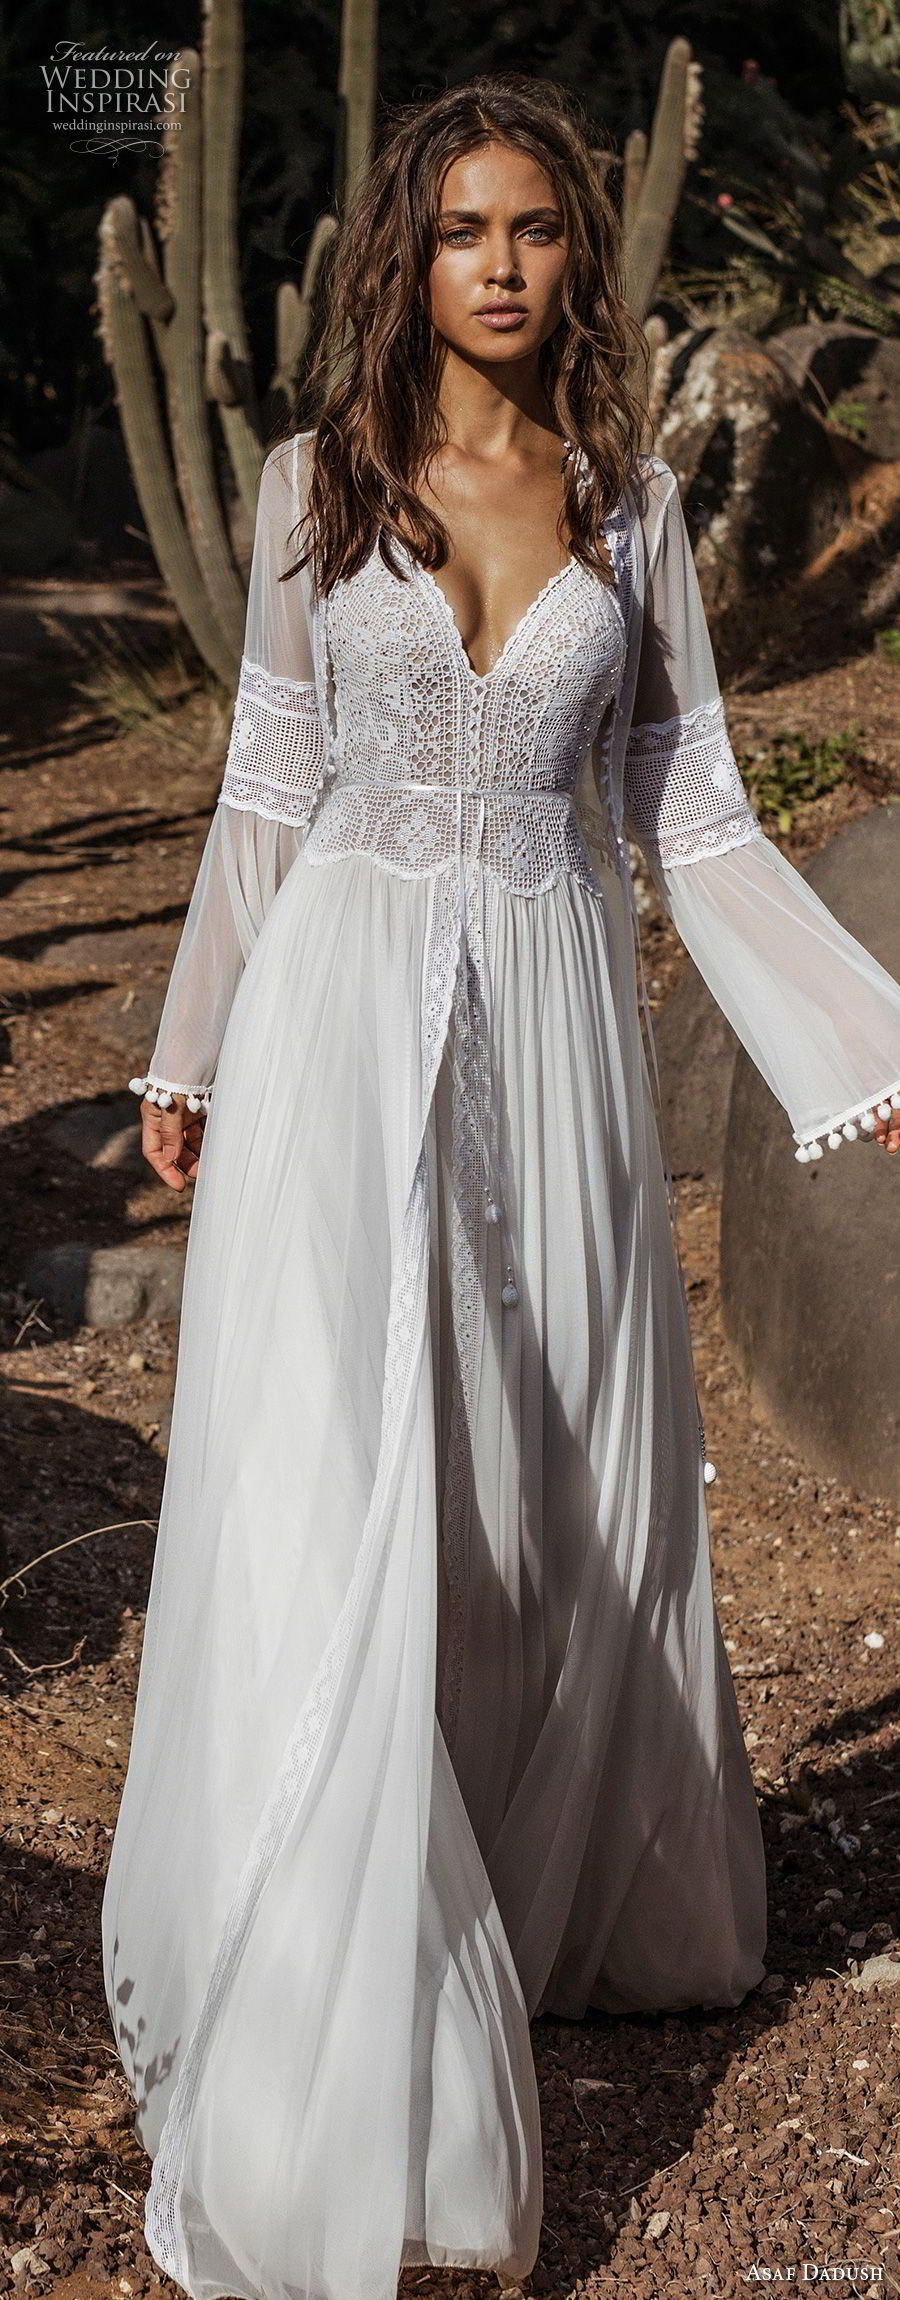 Asaf dadush wedding dresses bodice neckline and bohemian